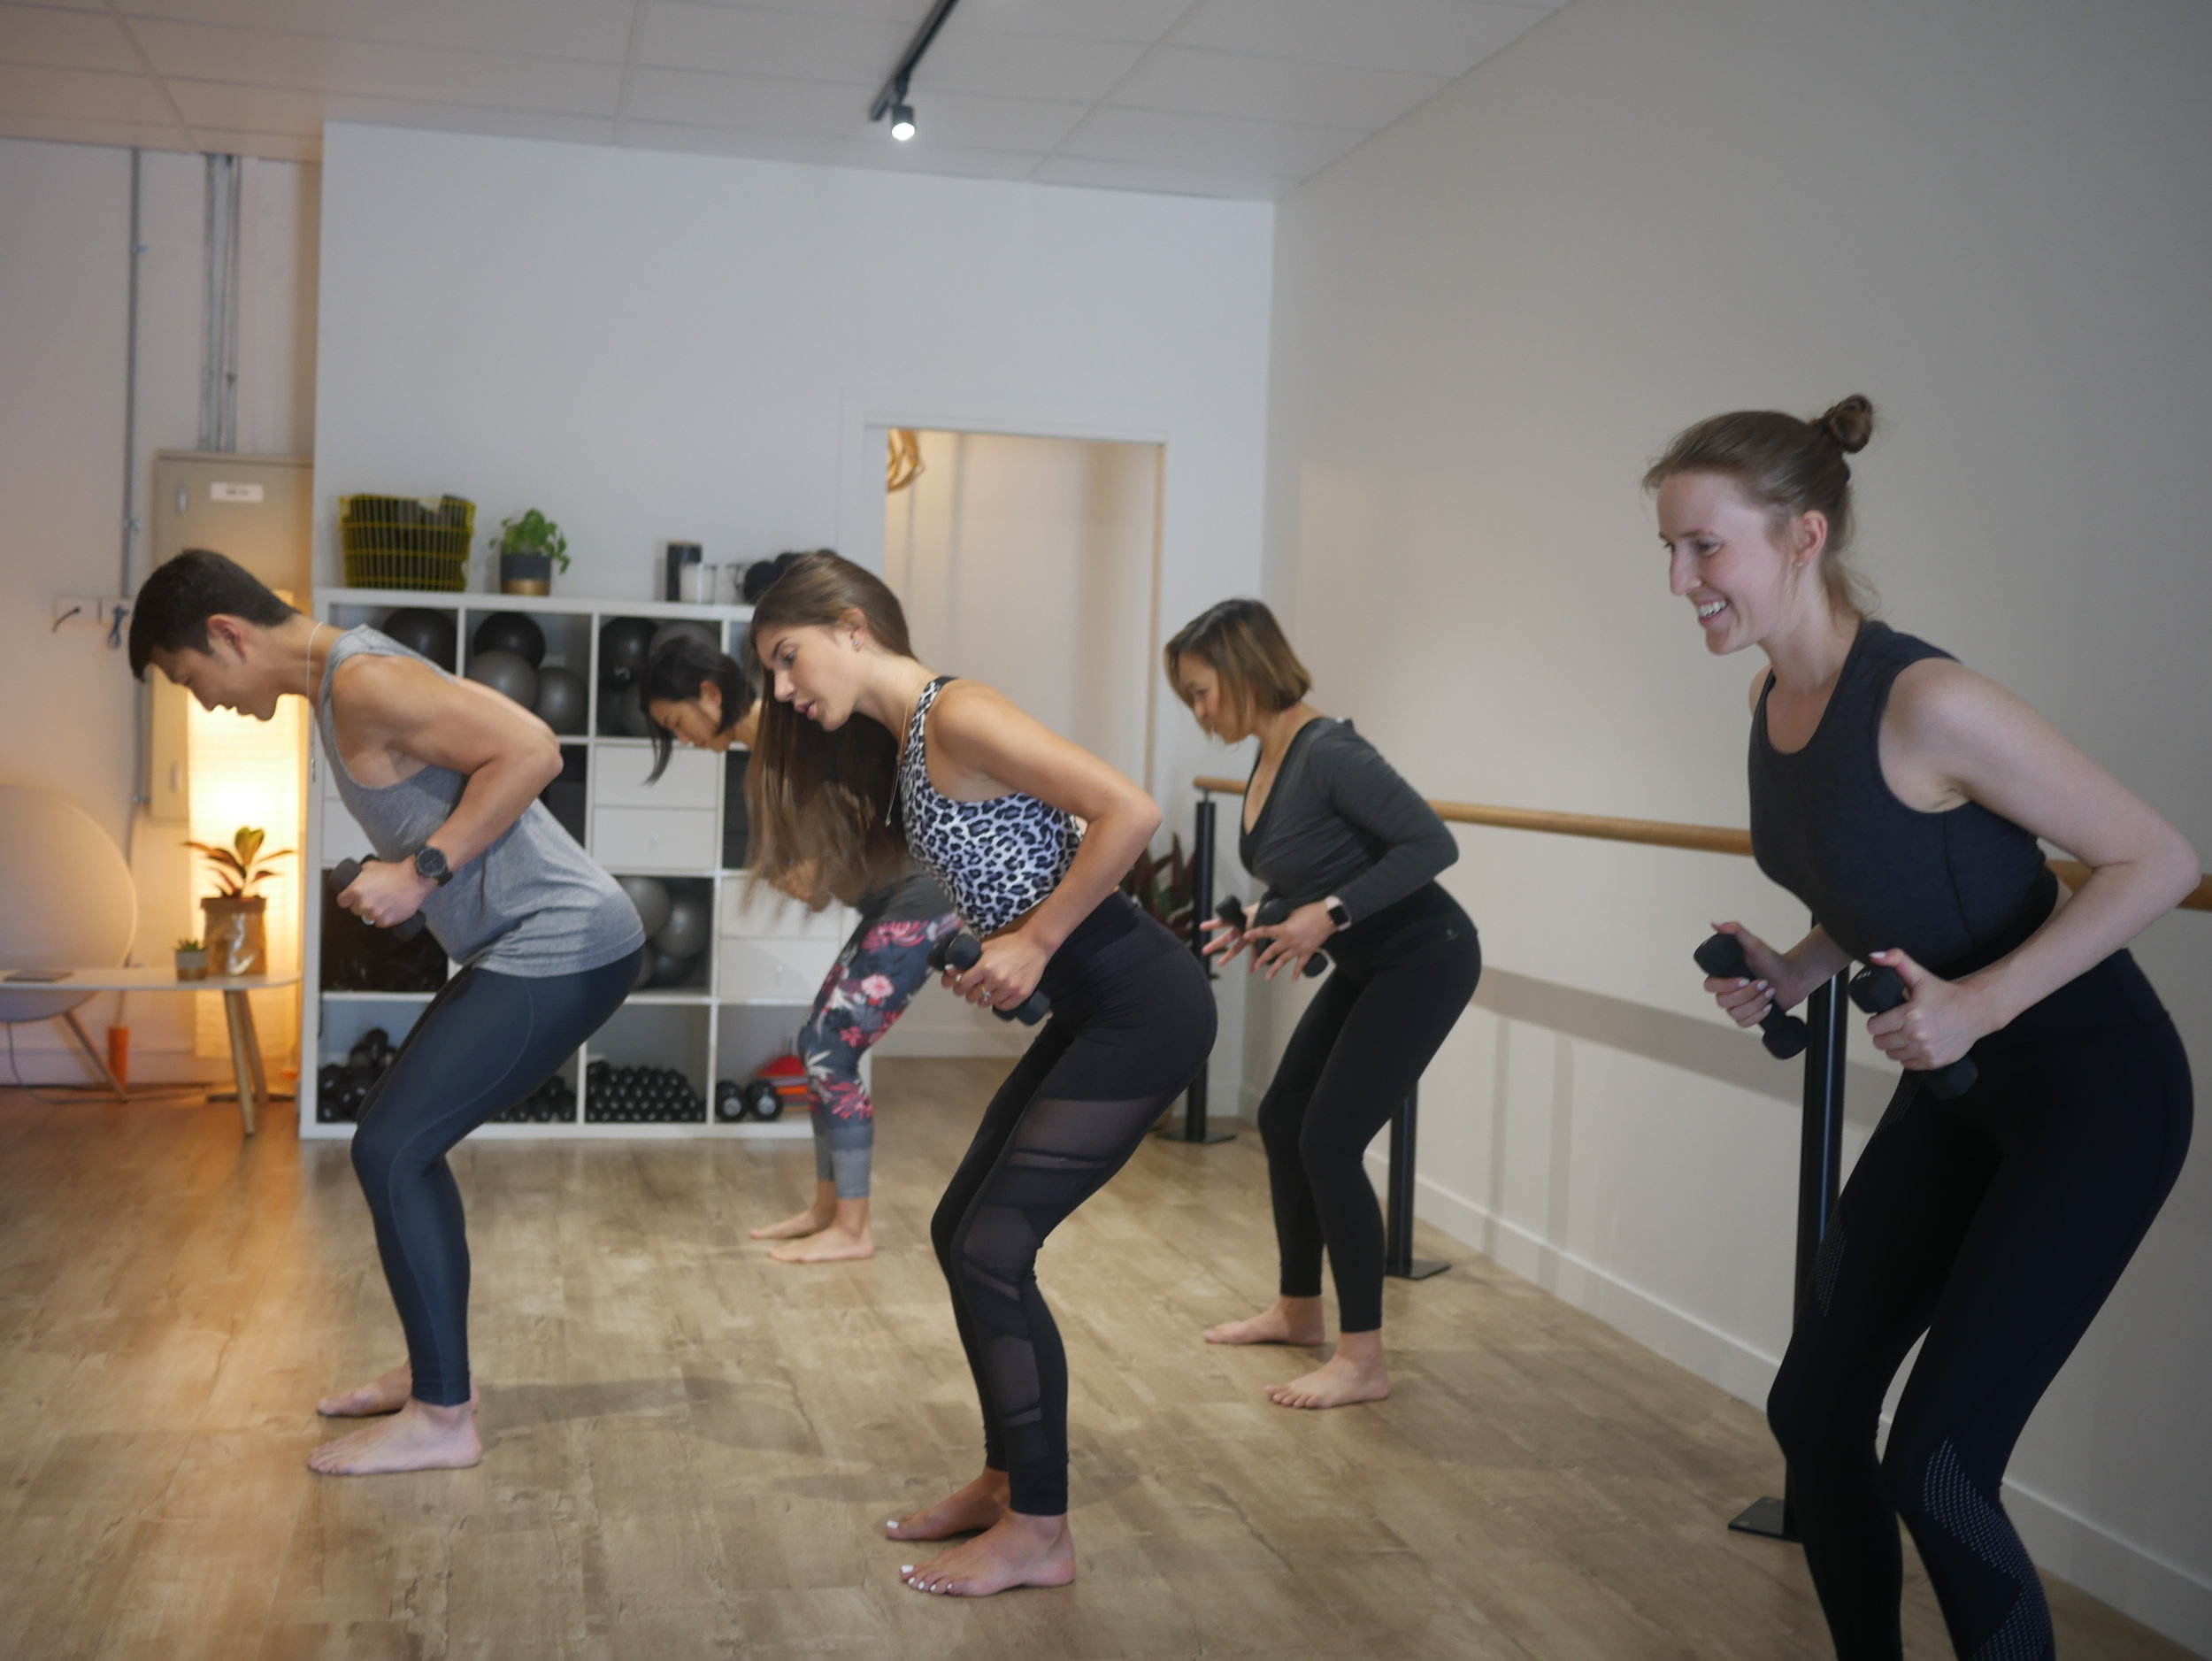 Barre HIIT - Taking S3 Barre to a new level. Same barre with a twist. Be prepared to work up a sweat with this dynamic workout incorporating fast paced HIIT based exercises to give you that extra cardio boost!